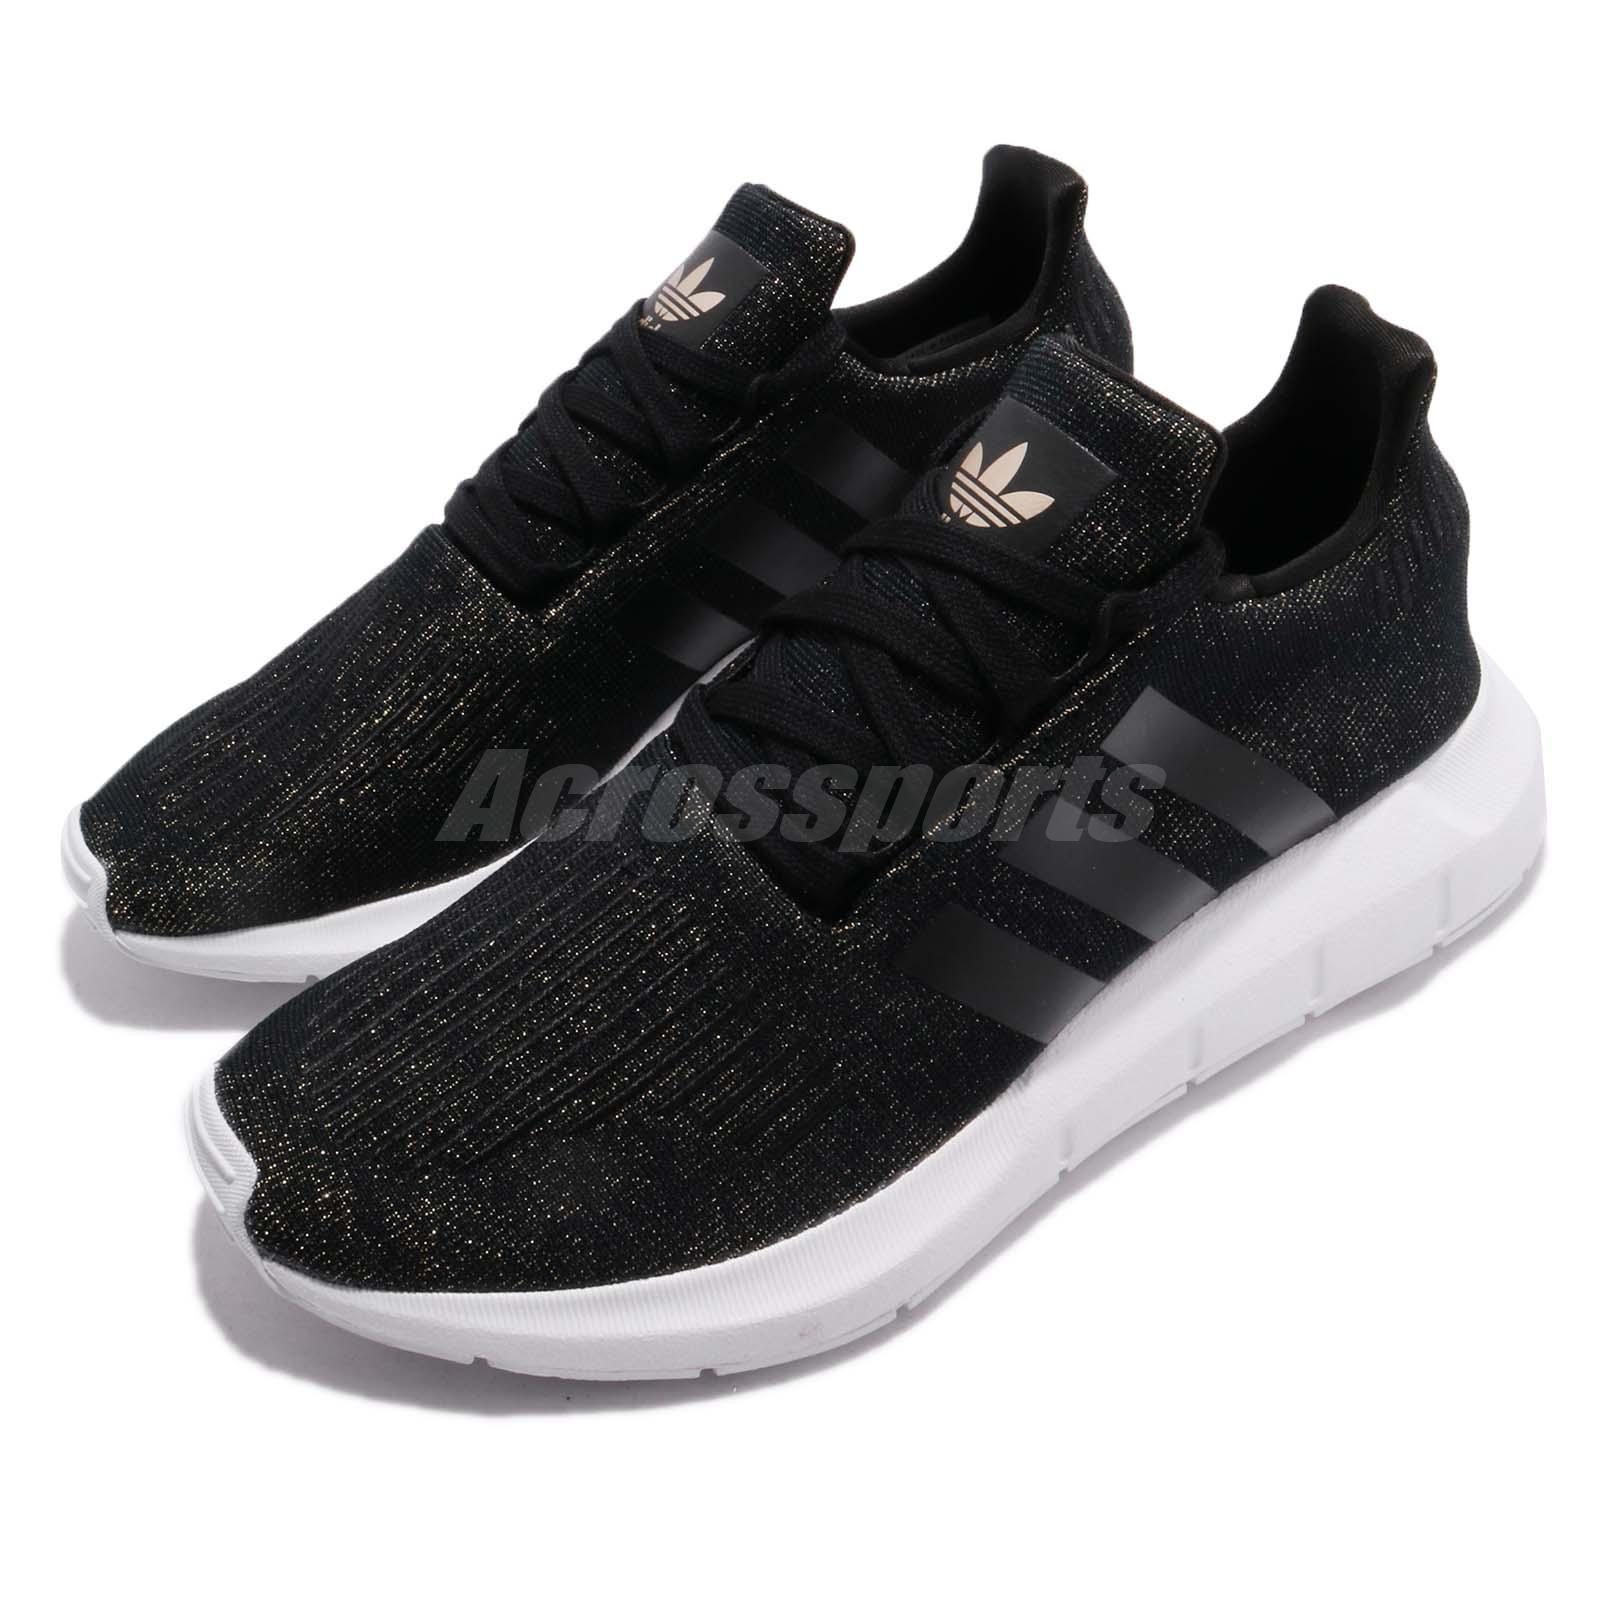 58a3012285ce Details about adidas Swift Run W Core Black White Gold Women Running Shoes  Sneakers CQ2018